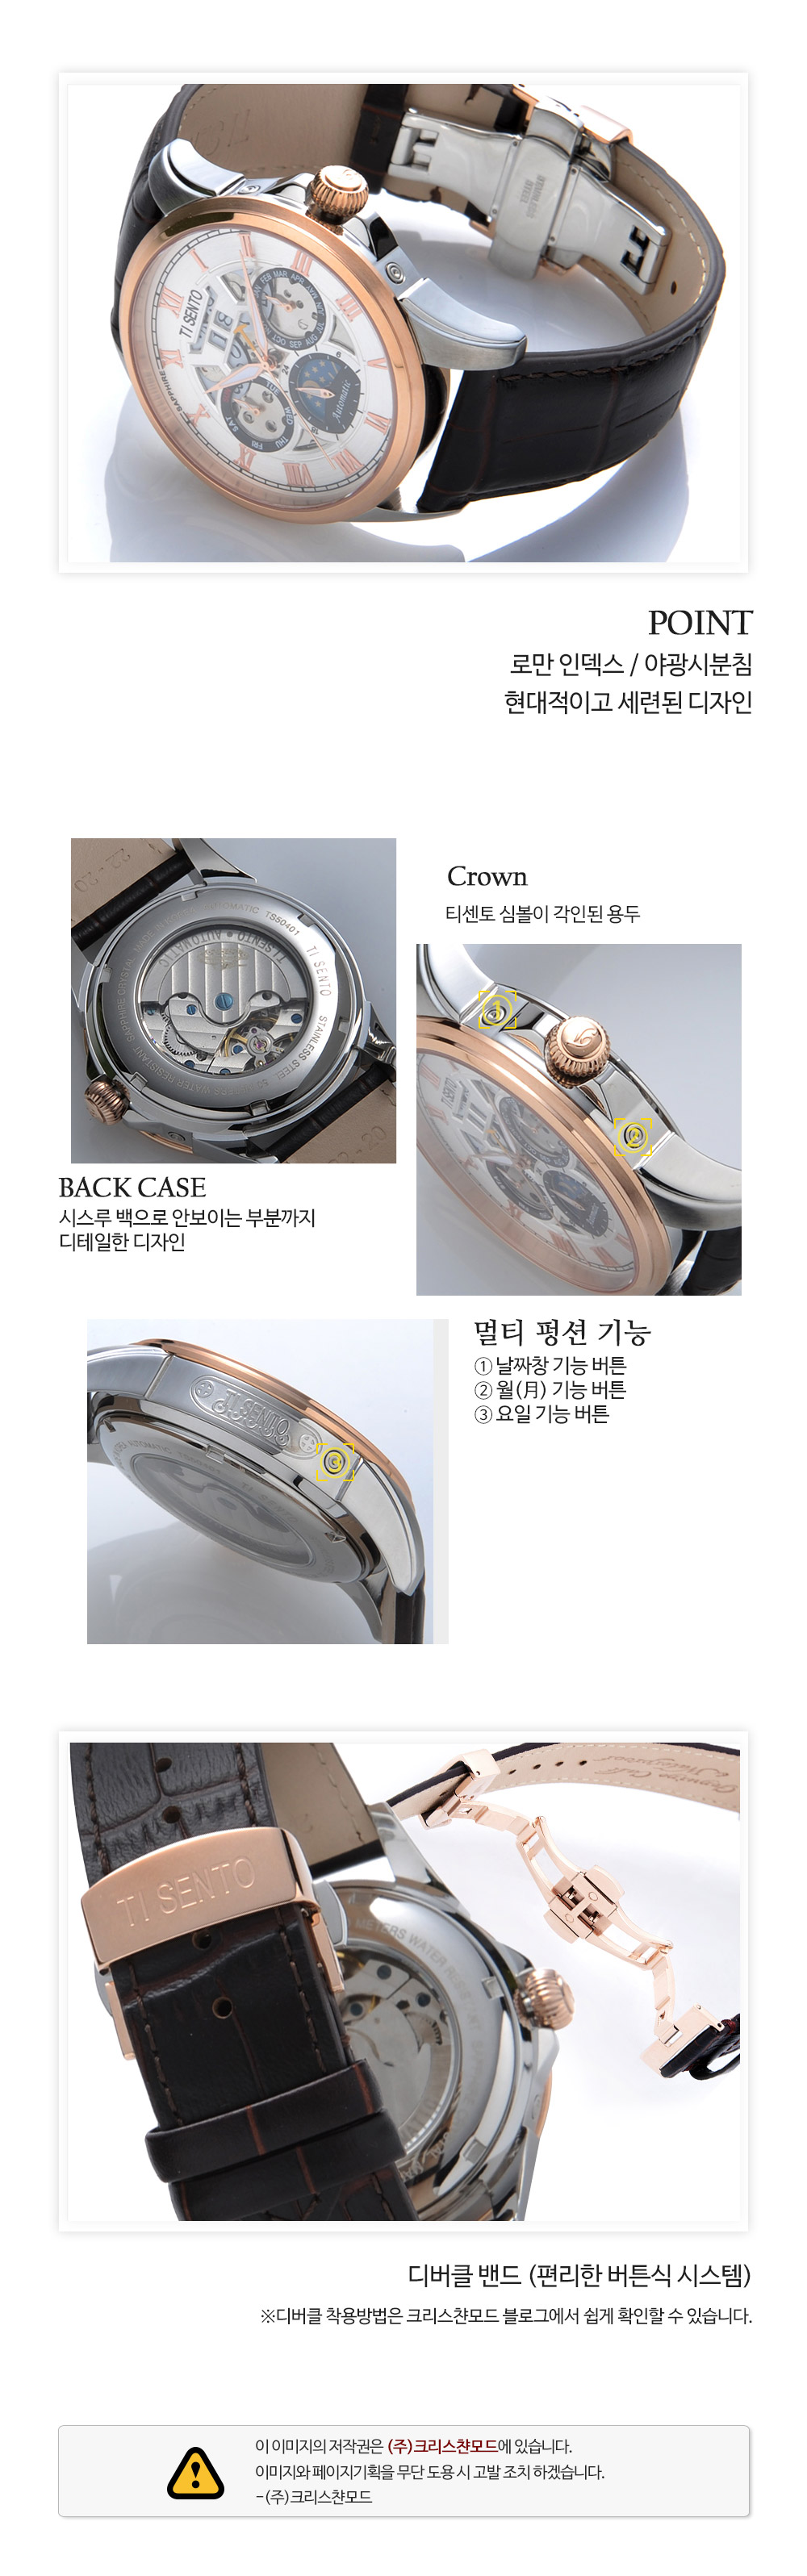 [ TISENTO ] KOREA MADE HIGH QUALITY AUTOMATIC MECHANICAL GENUINE CALF WATERPROOF LEATHER STRAP WATCH TS 50401 ROCH